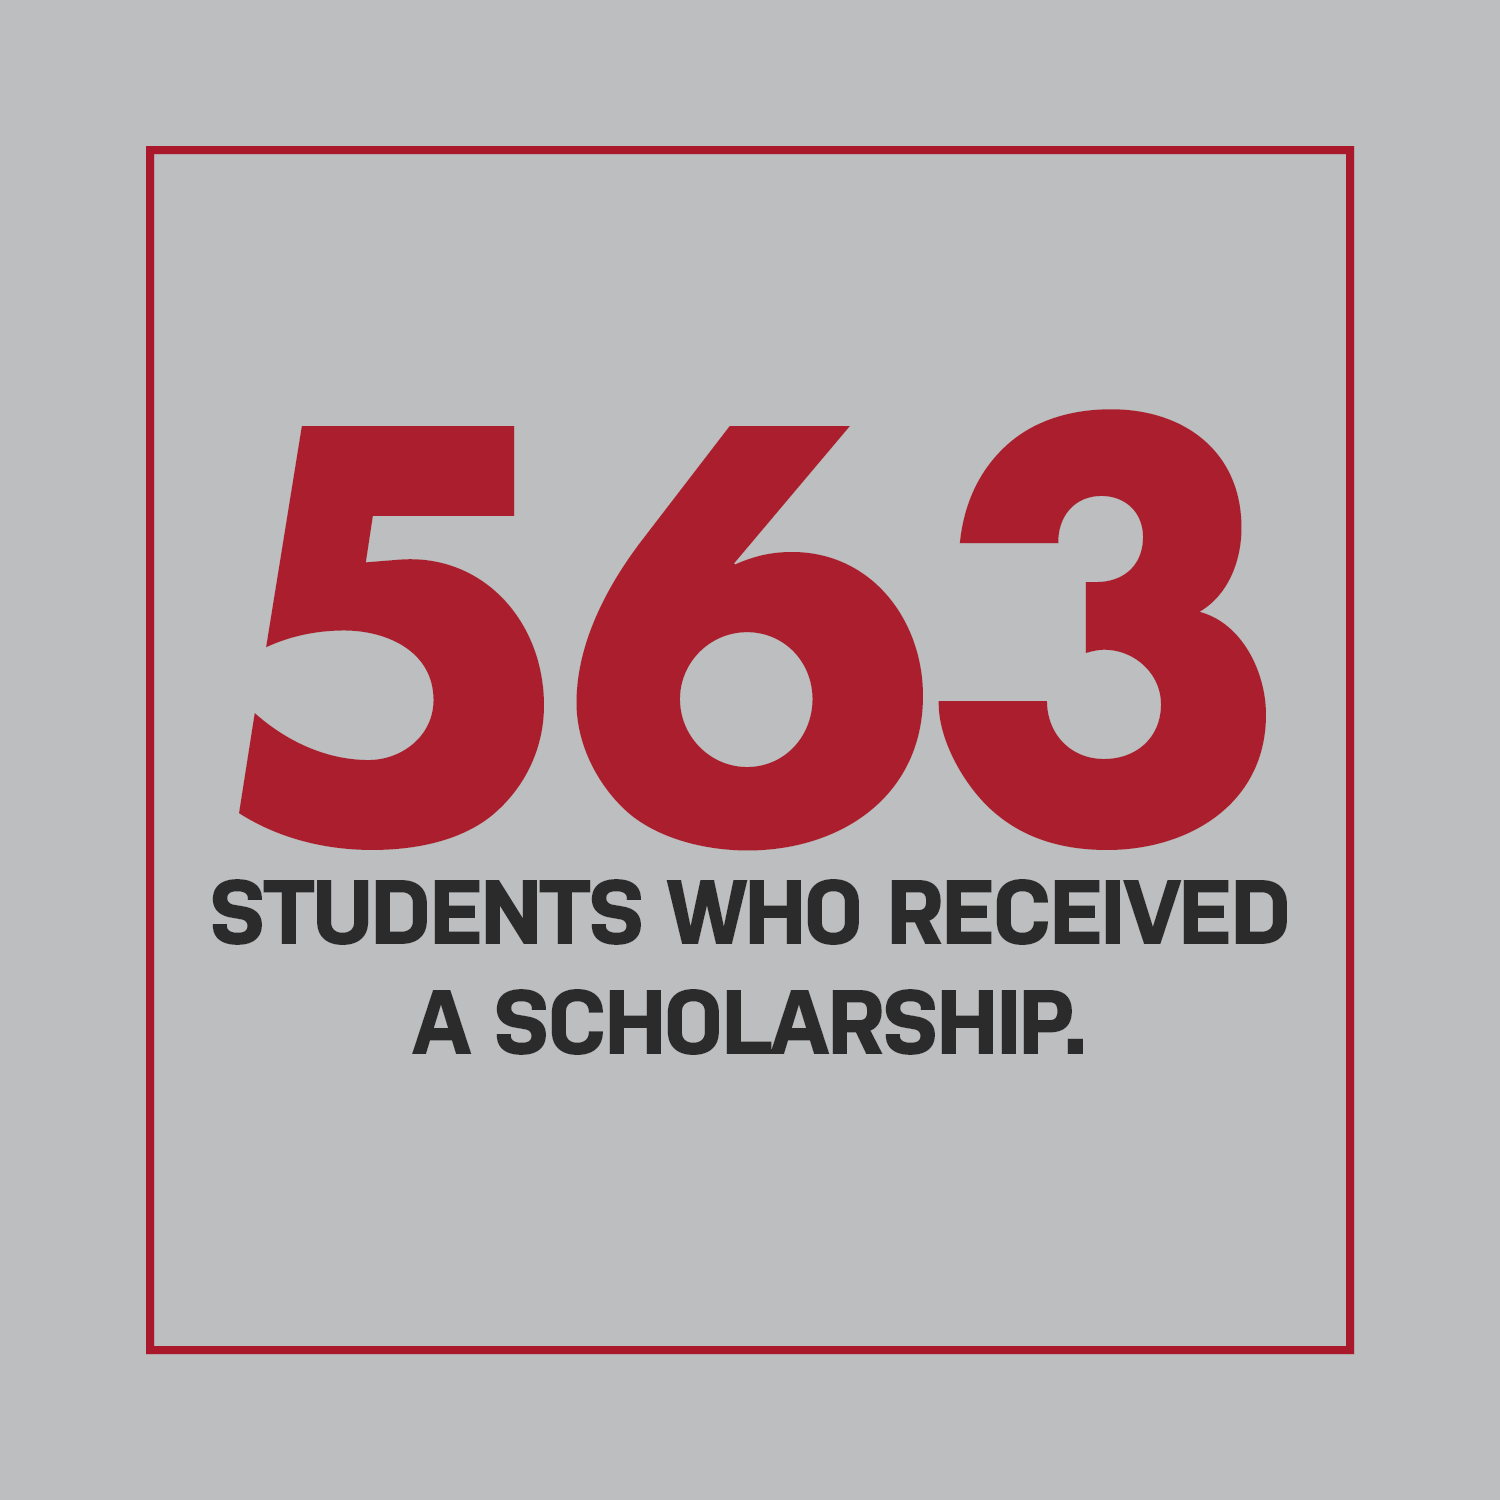 563 Students Who Received a Scholarshipl